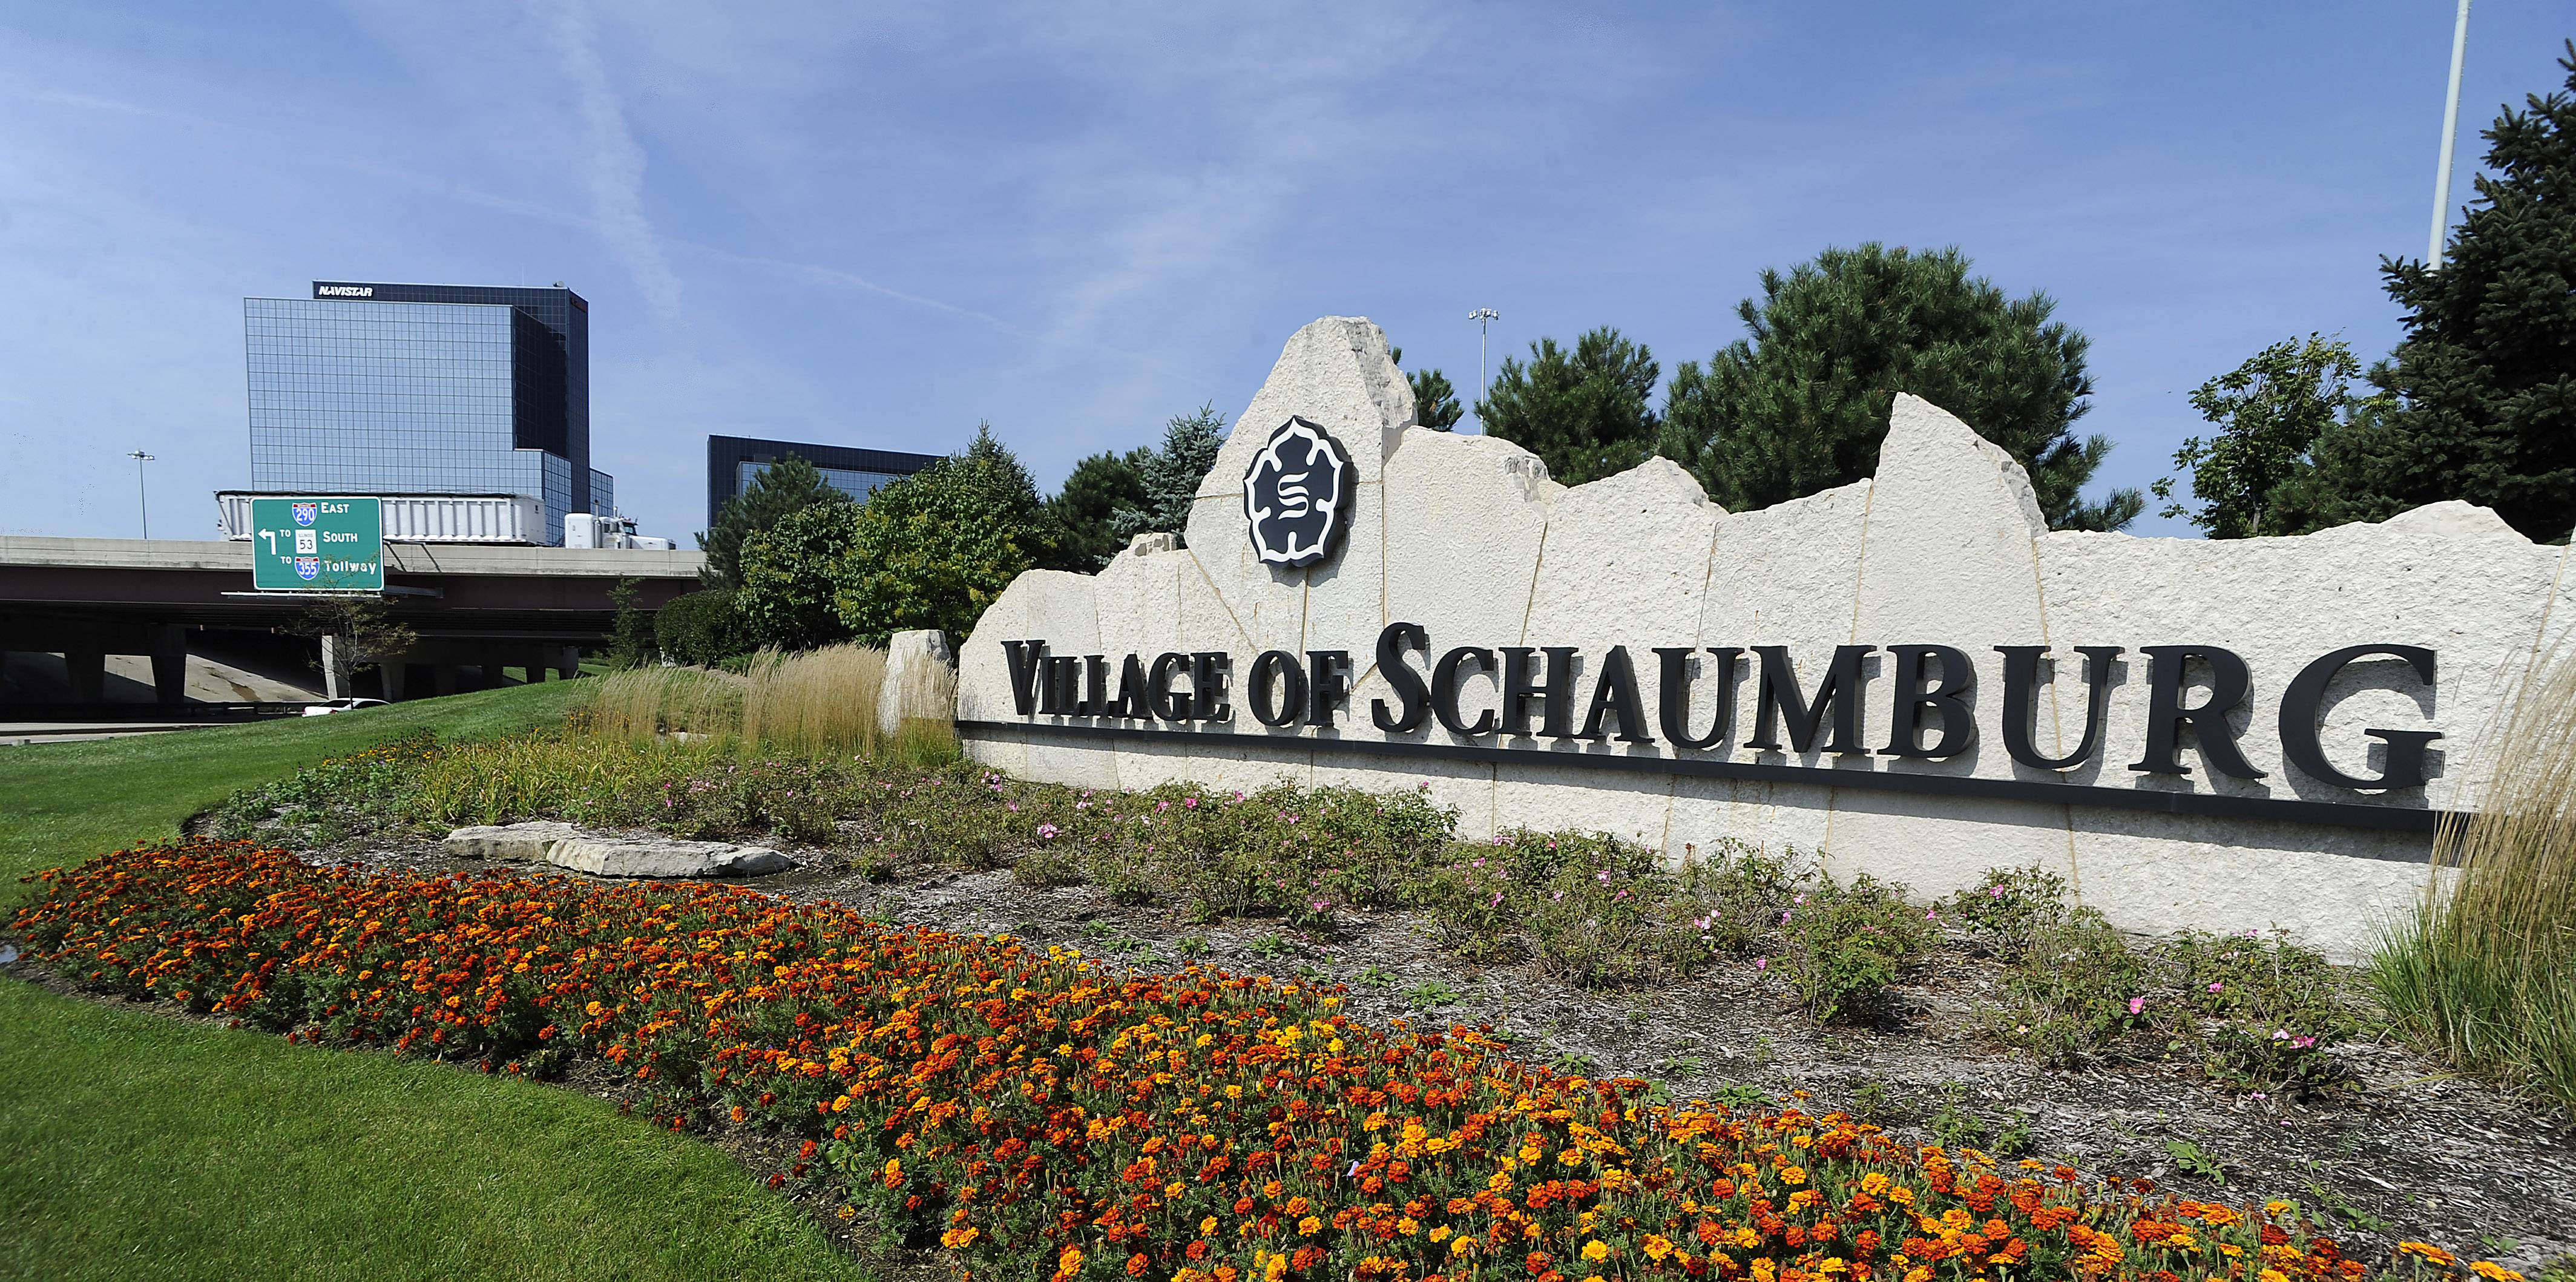 Schaumburg budgets for more road repairs without tax increase